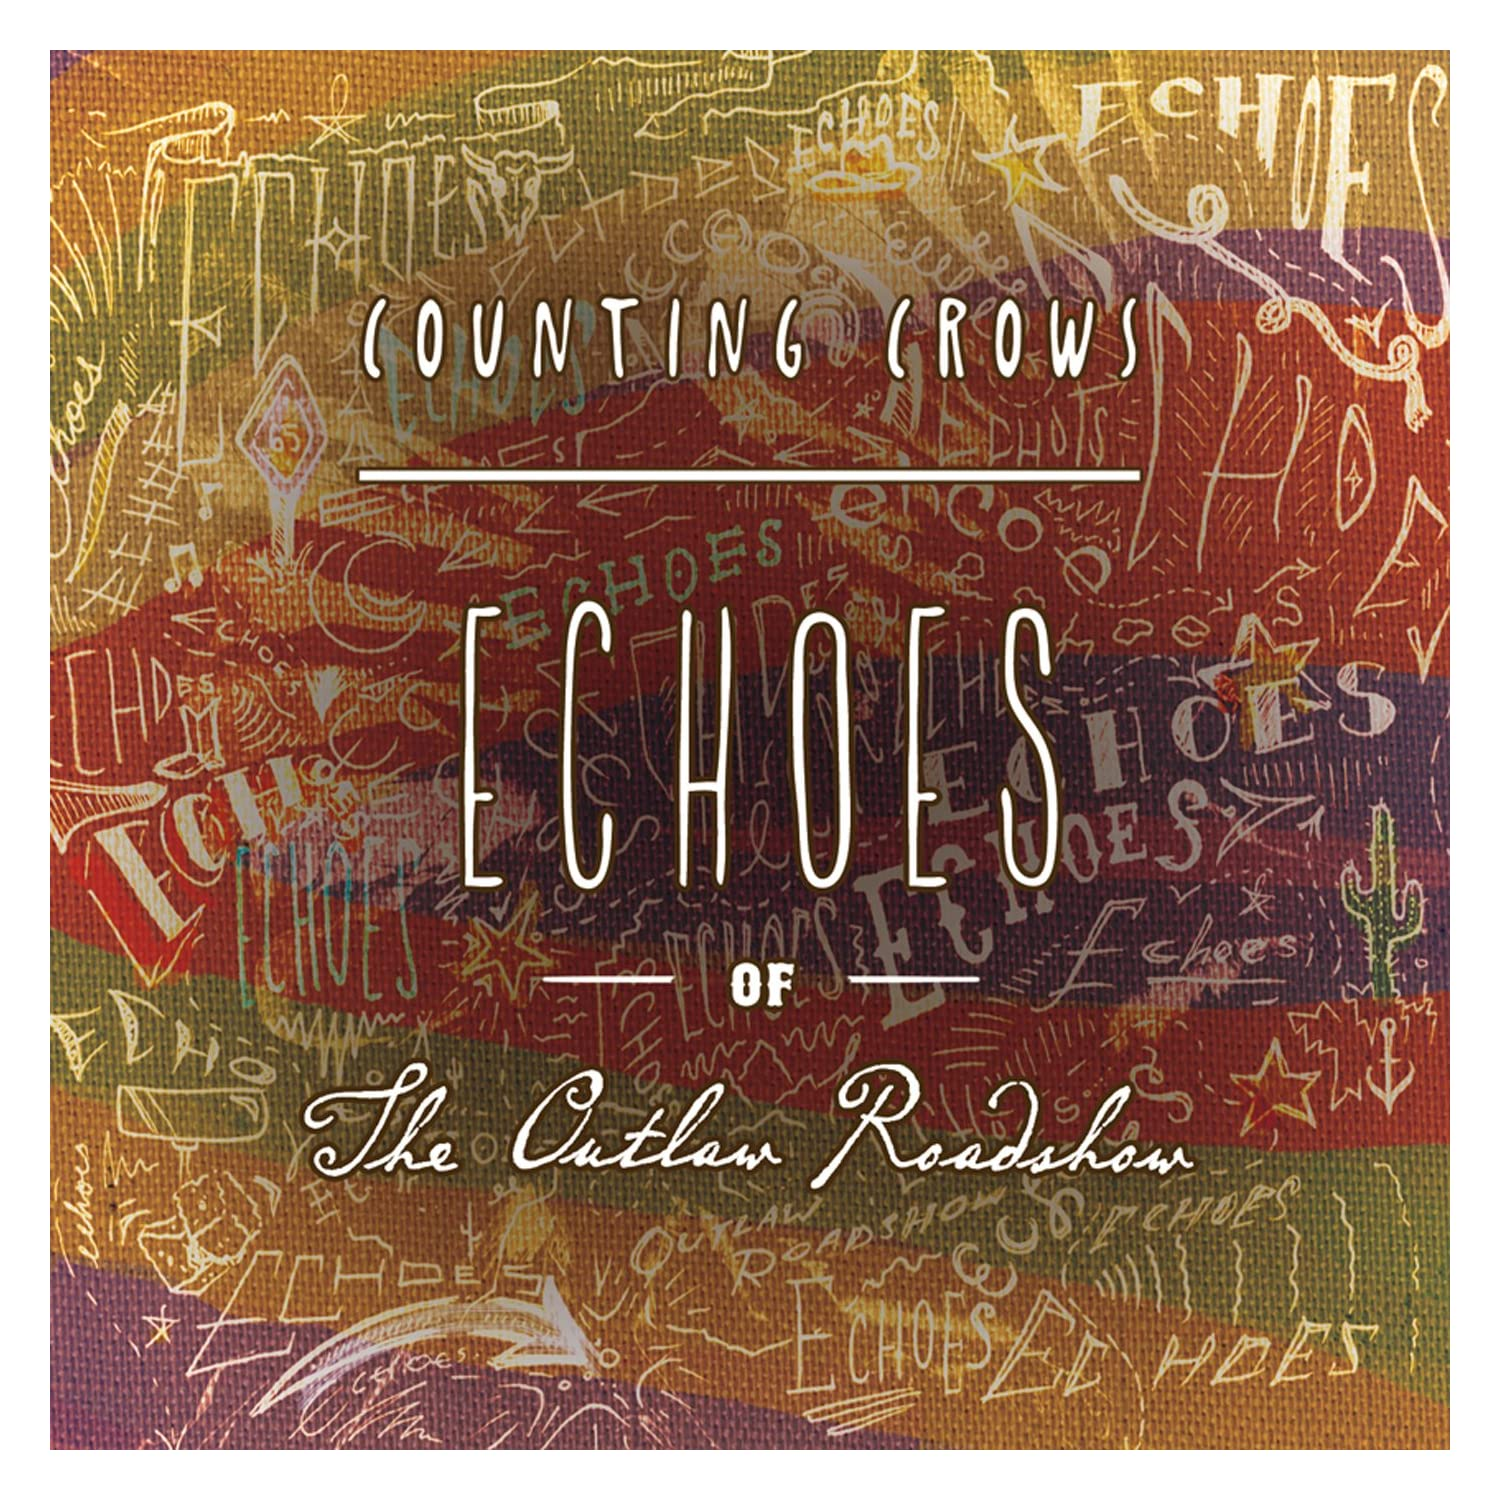 Counting Crows: Echoes of the Outlaw Roadshow (2013) 817aWE5n1VL._AA1500_